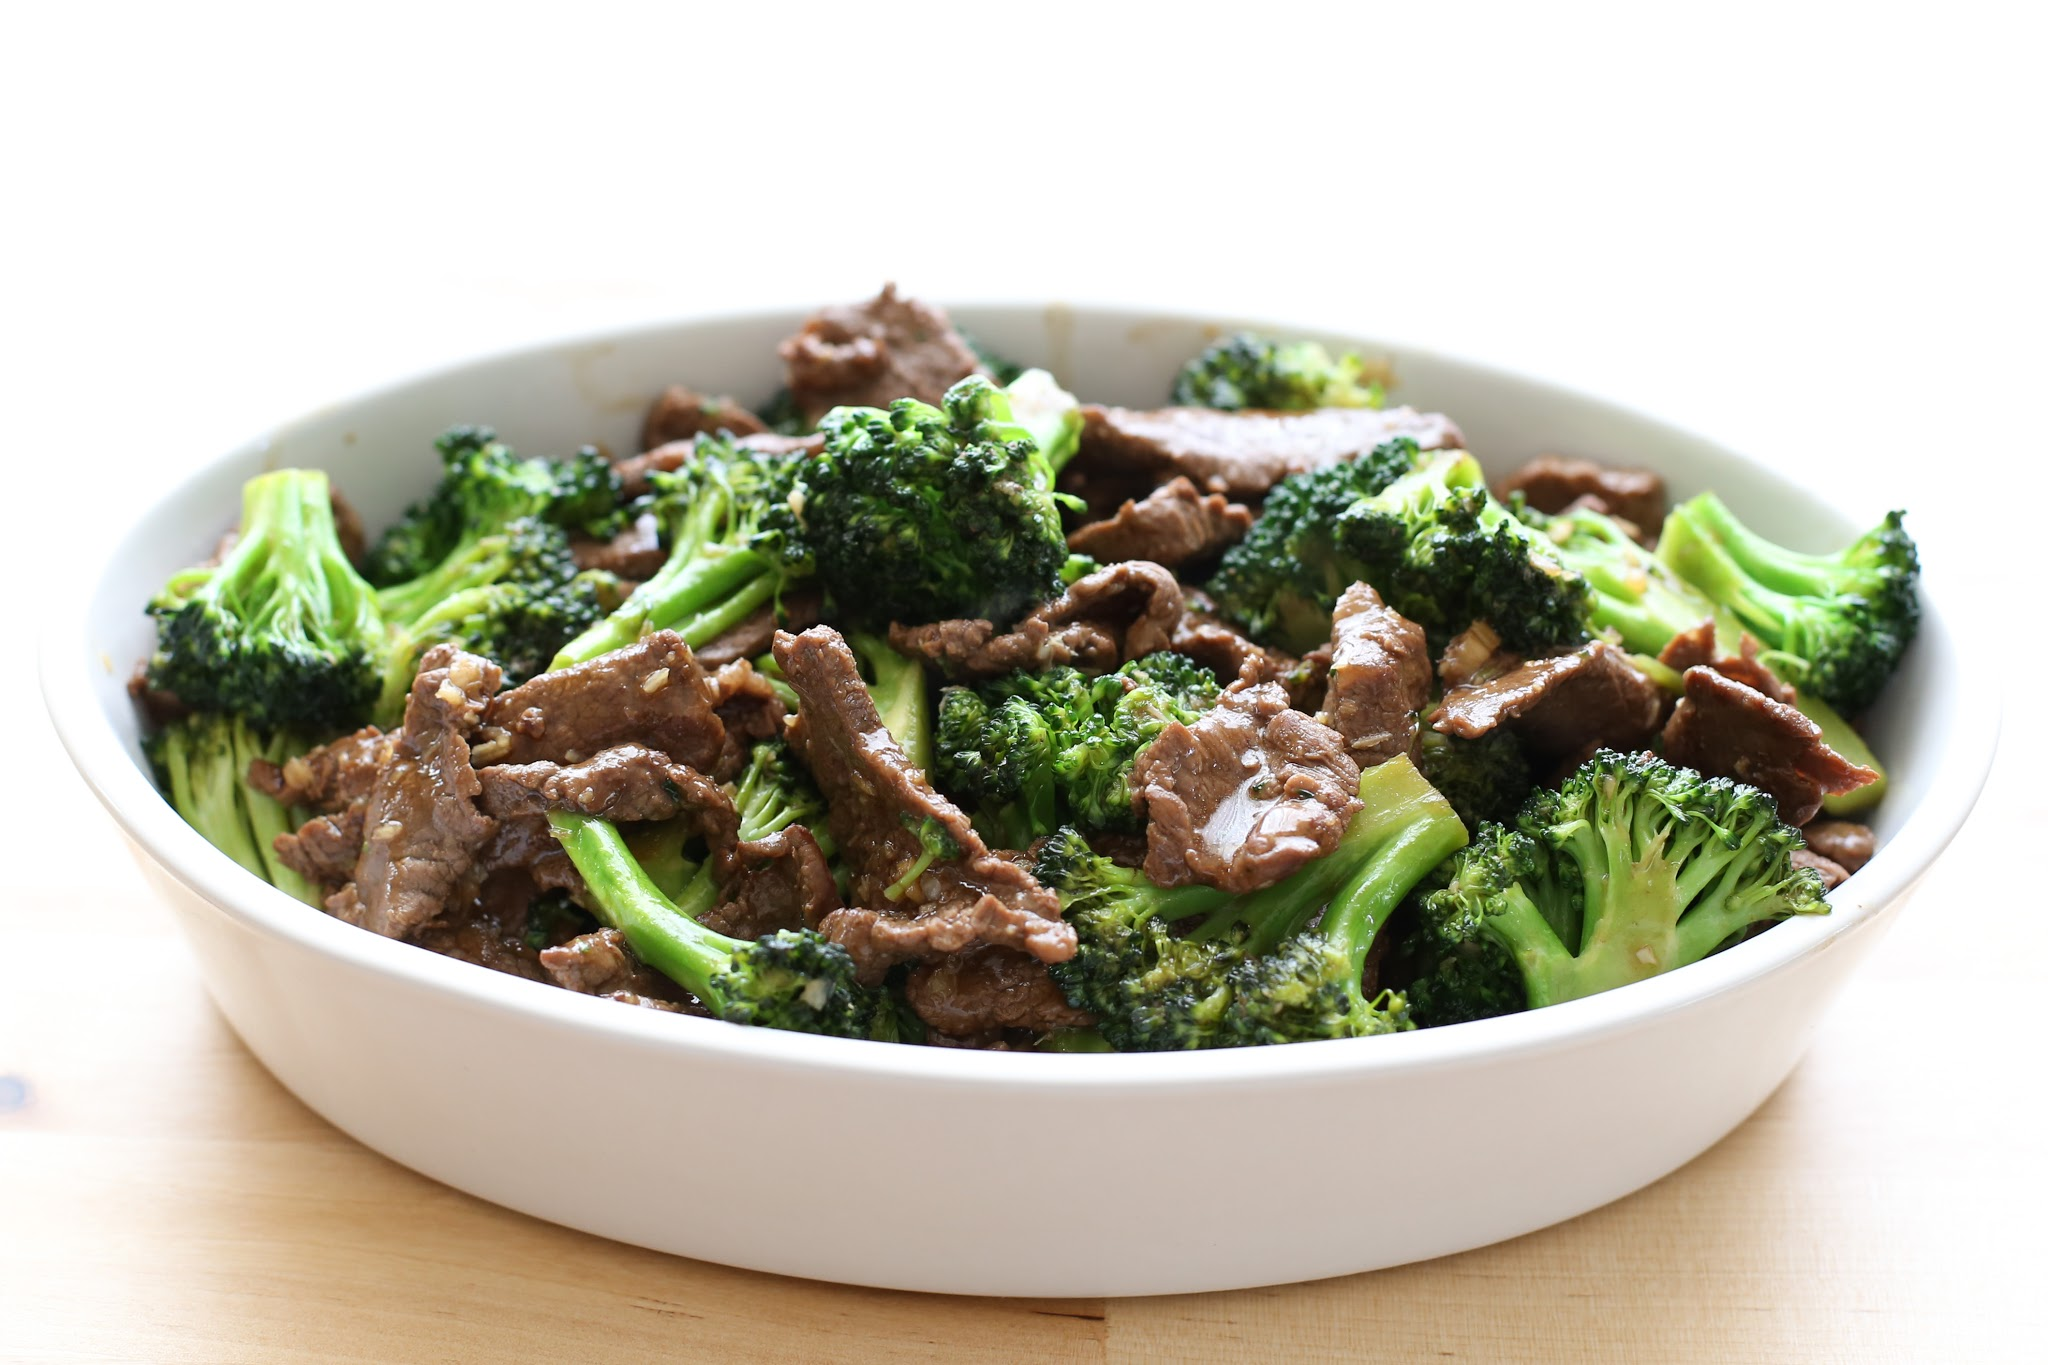 Sam choy beef broccoli recipes - sam choy beef broccoli recipe